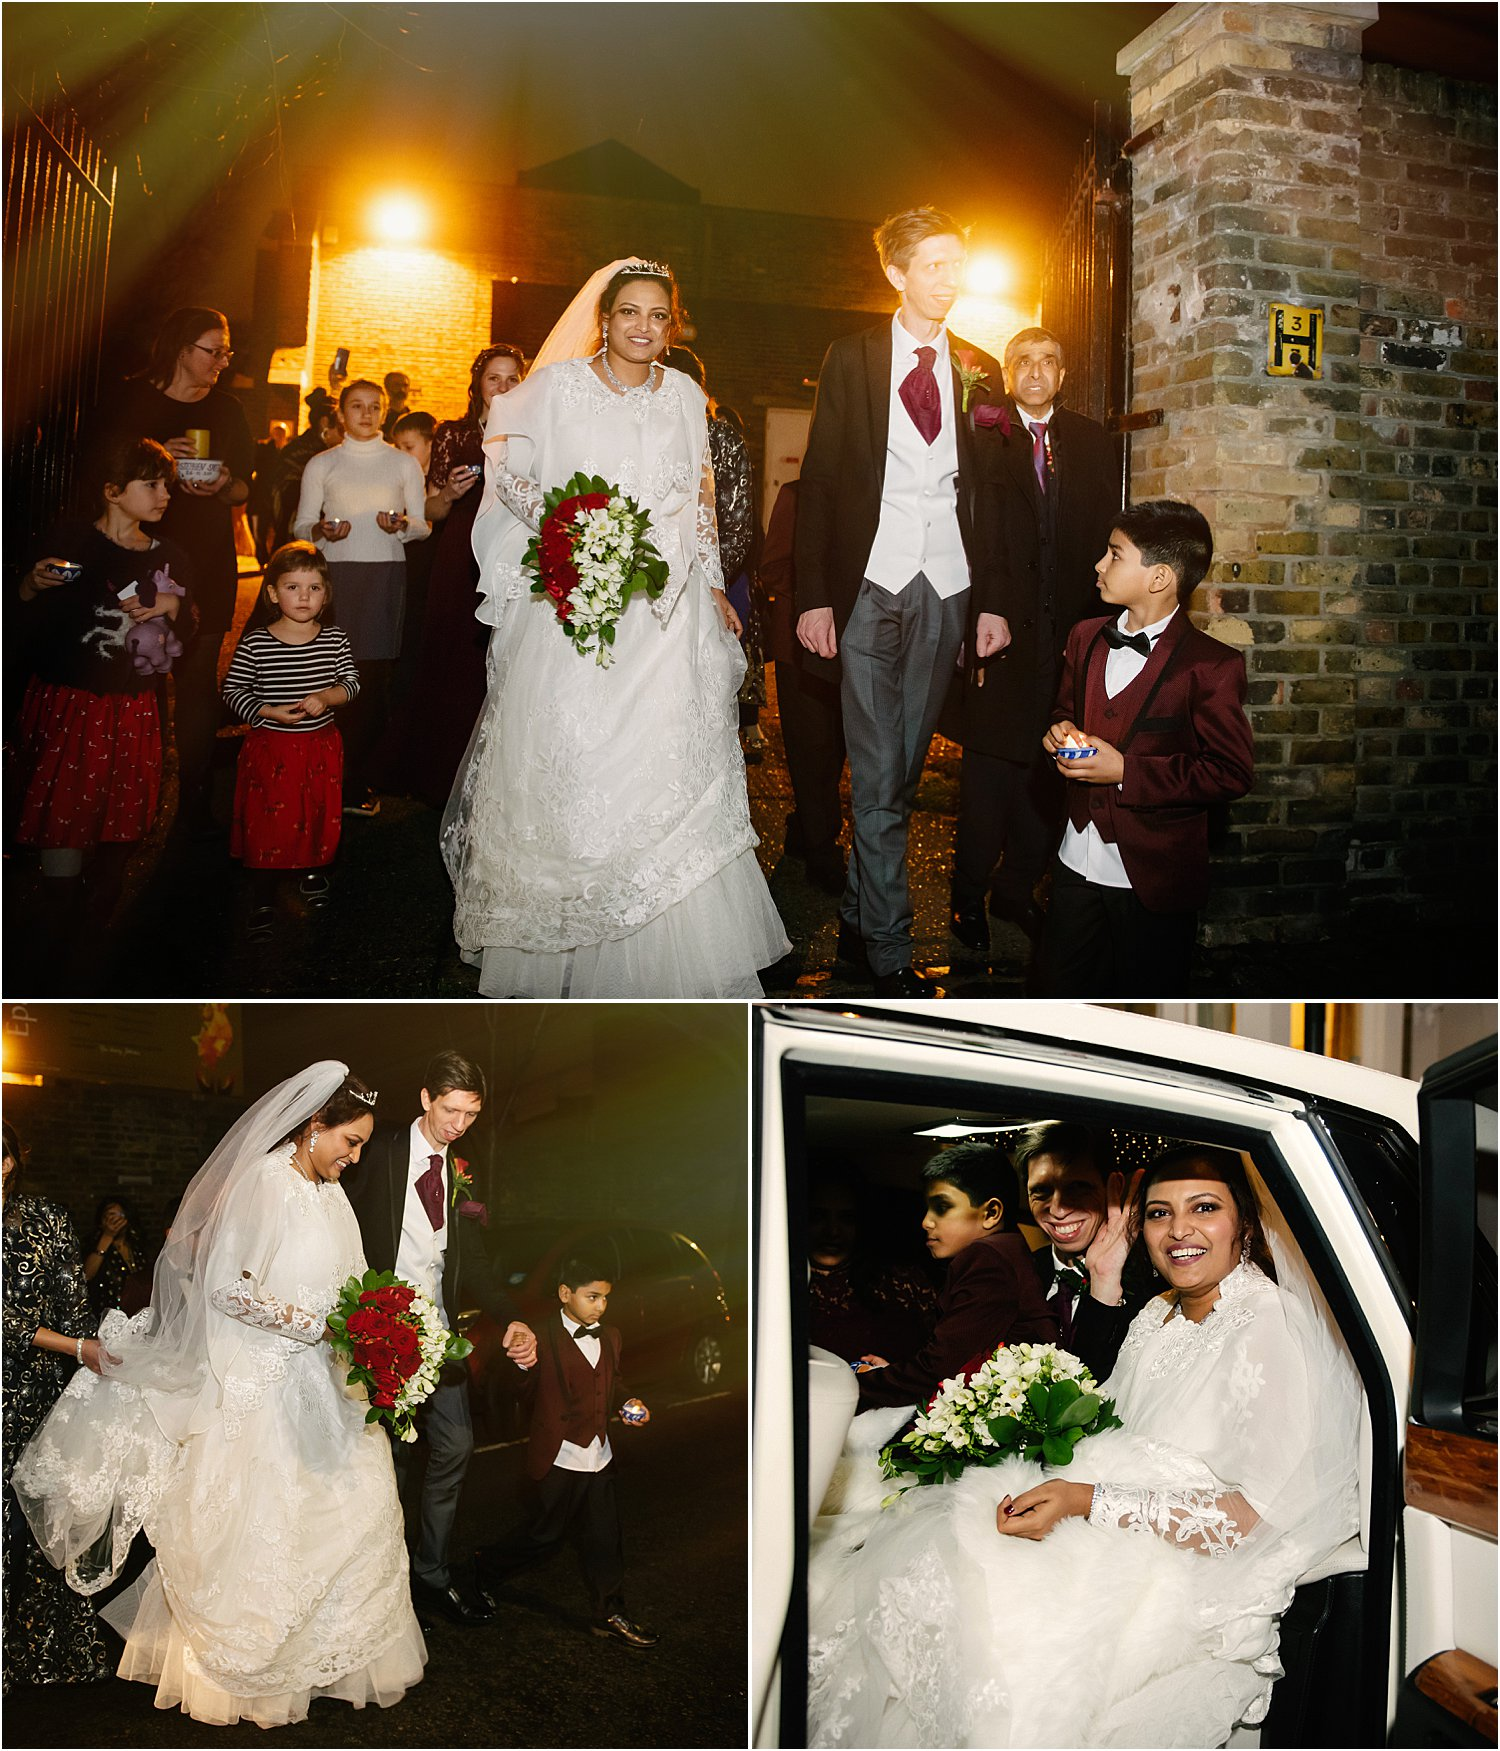 east-london-winter-wedding-st-peters-epainos-stephen-saira-lily-sawyer-photo